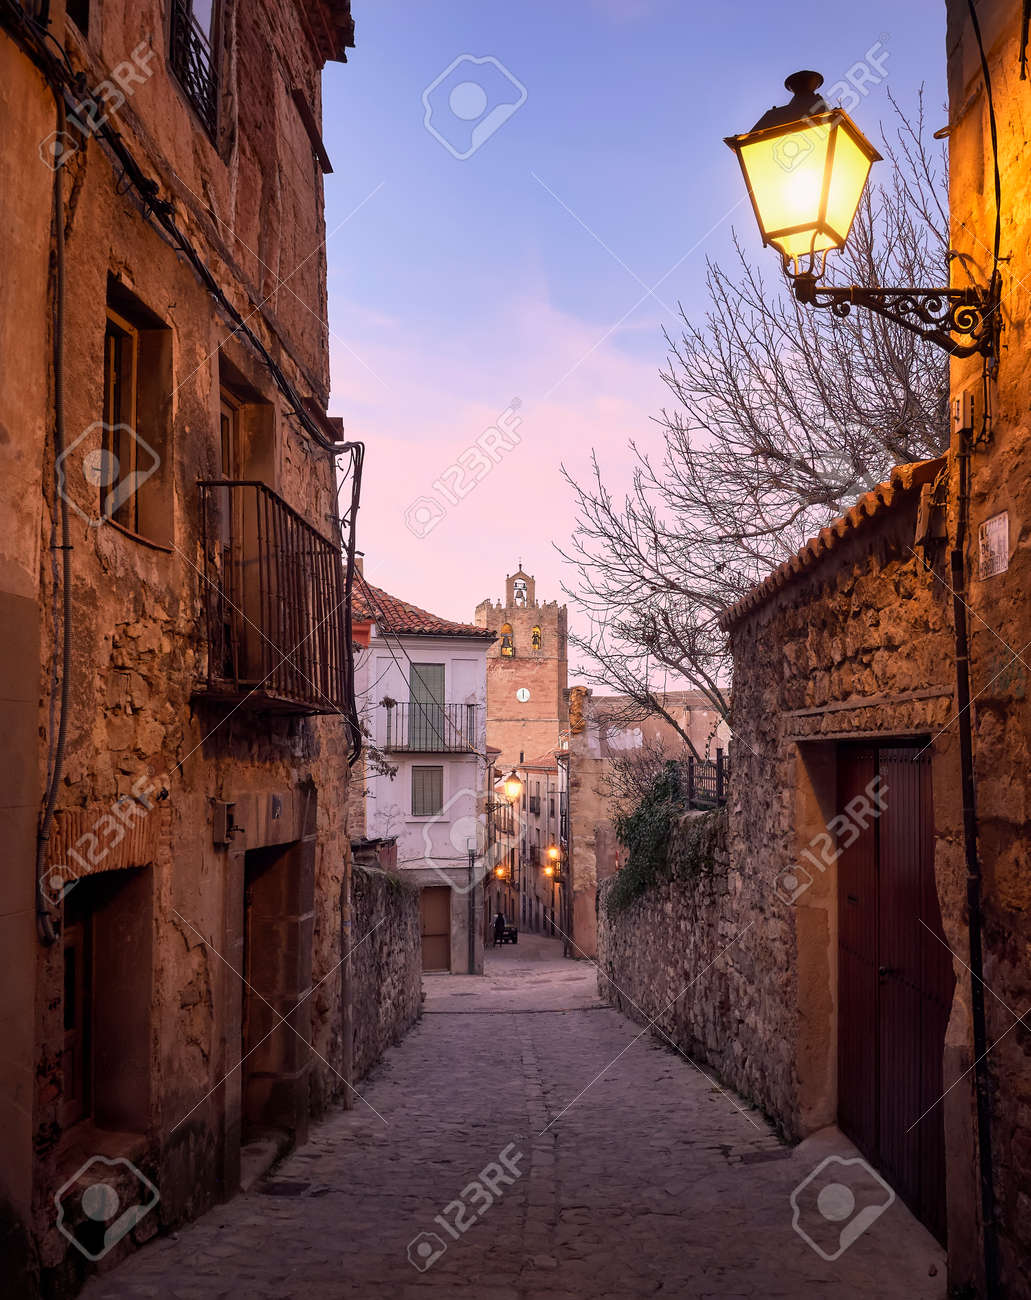 Historic architecture of the streets and tower of the Romanesque cathedral of the city of Siguenza, Guadalajara, Spain, at sunset - 157602571